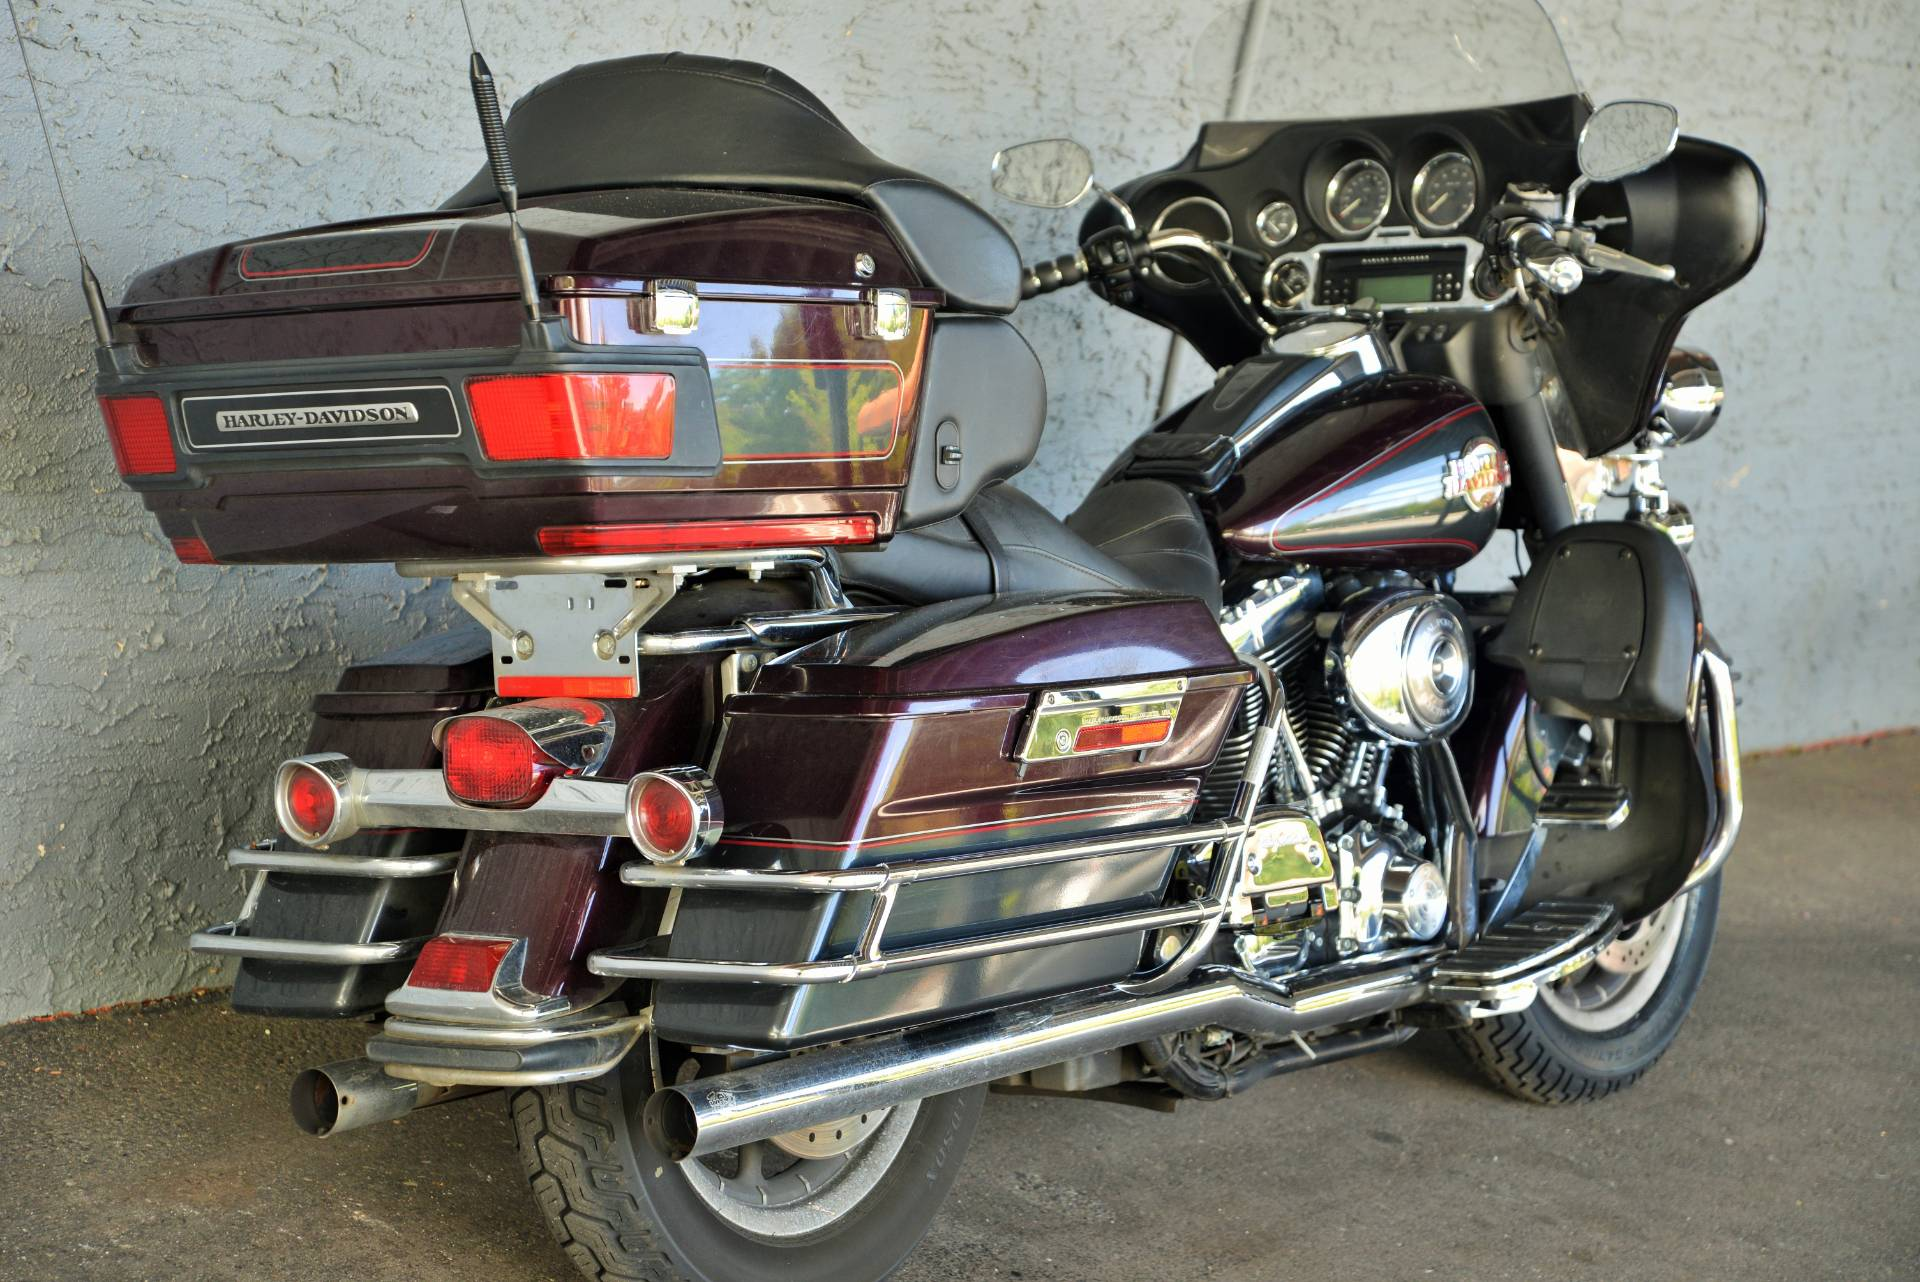 2006 Harley-Davidson ELECTRA GLIDE ULTRA in Lakewood, New Jersey - Photo 3